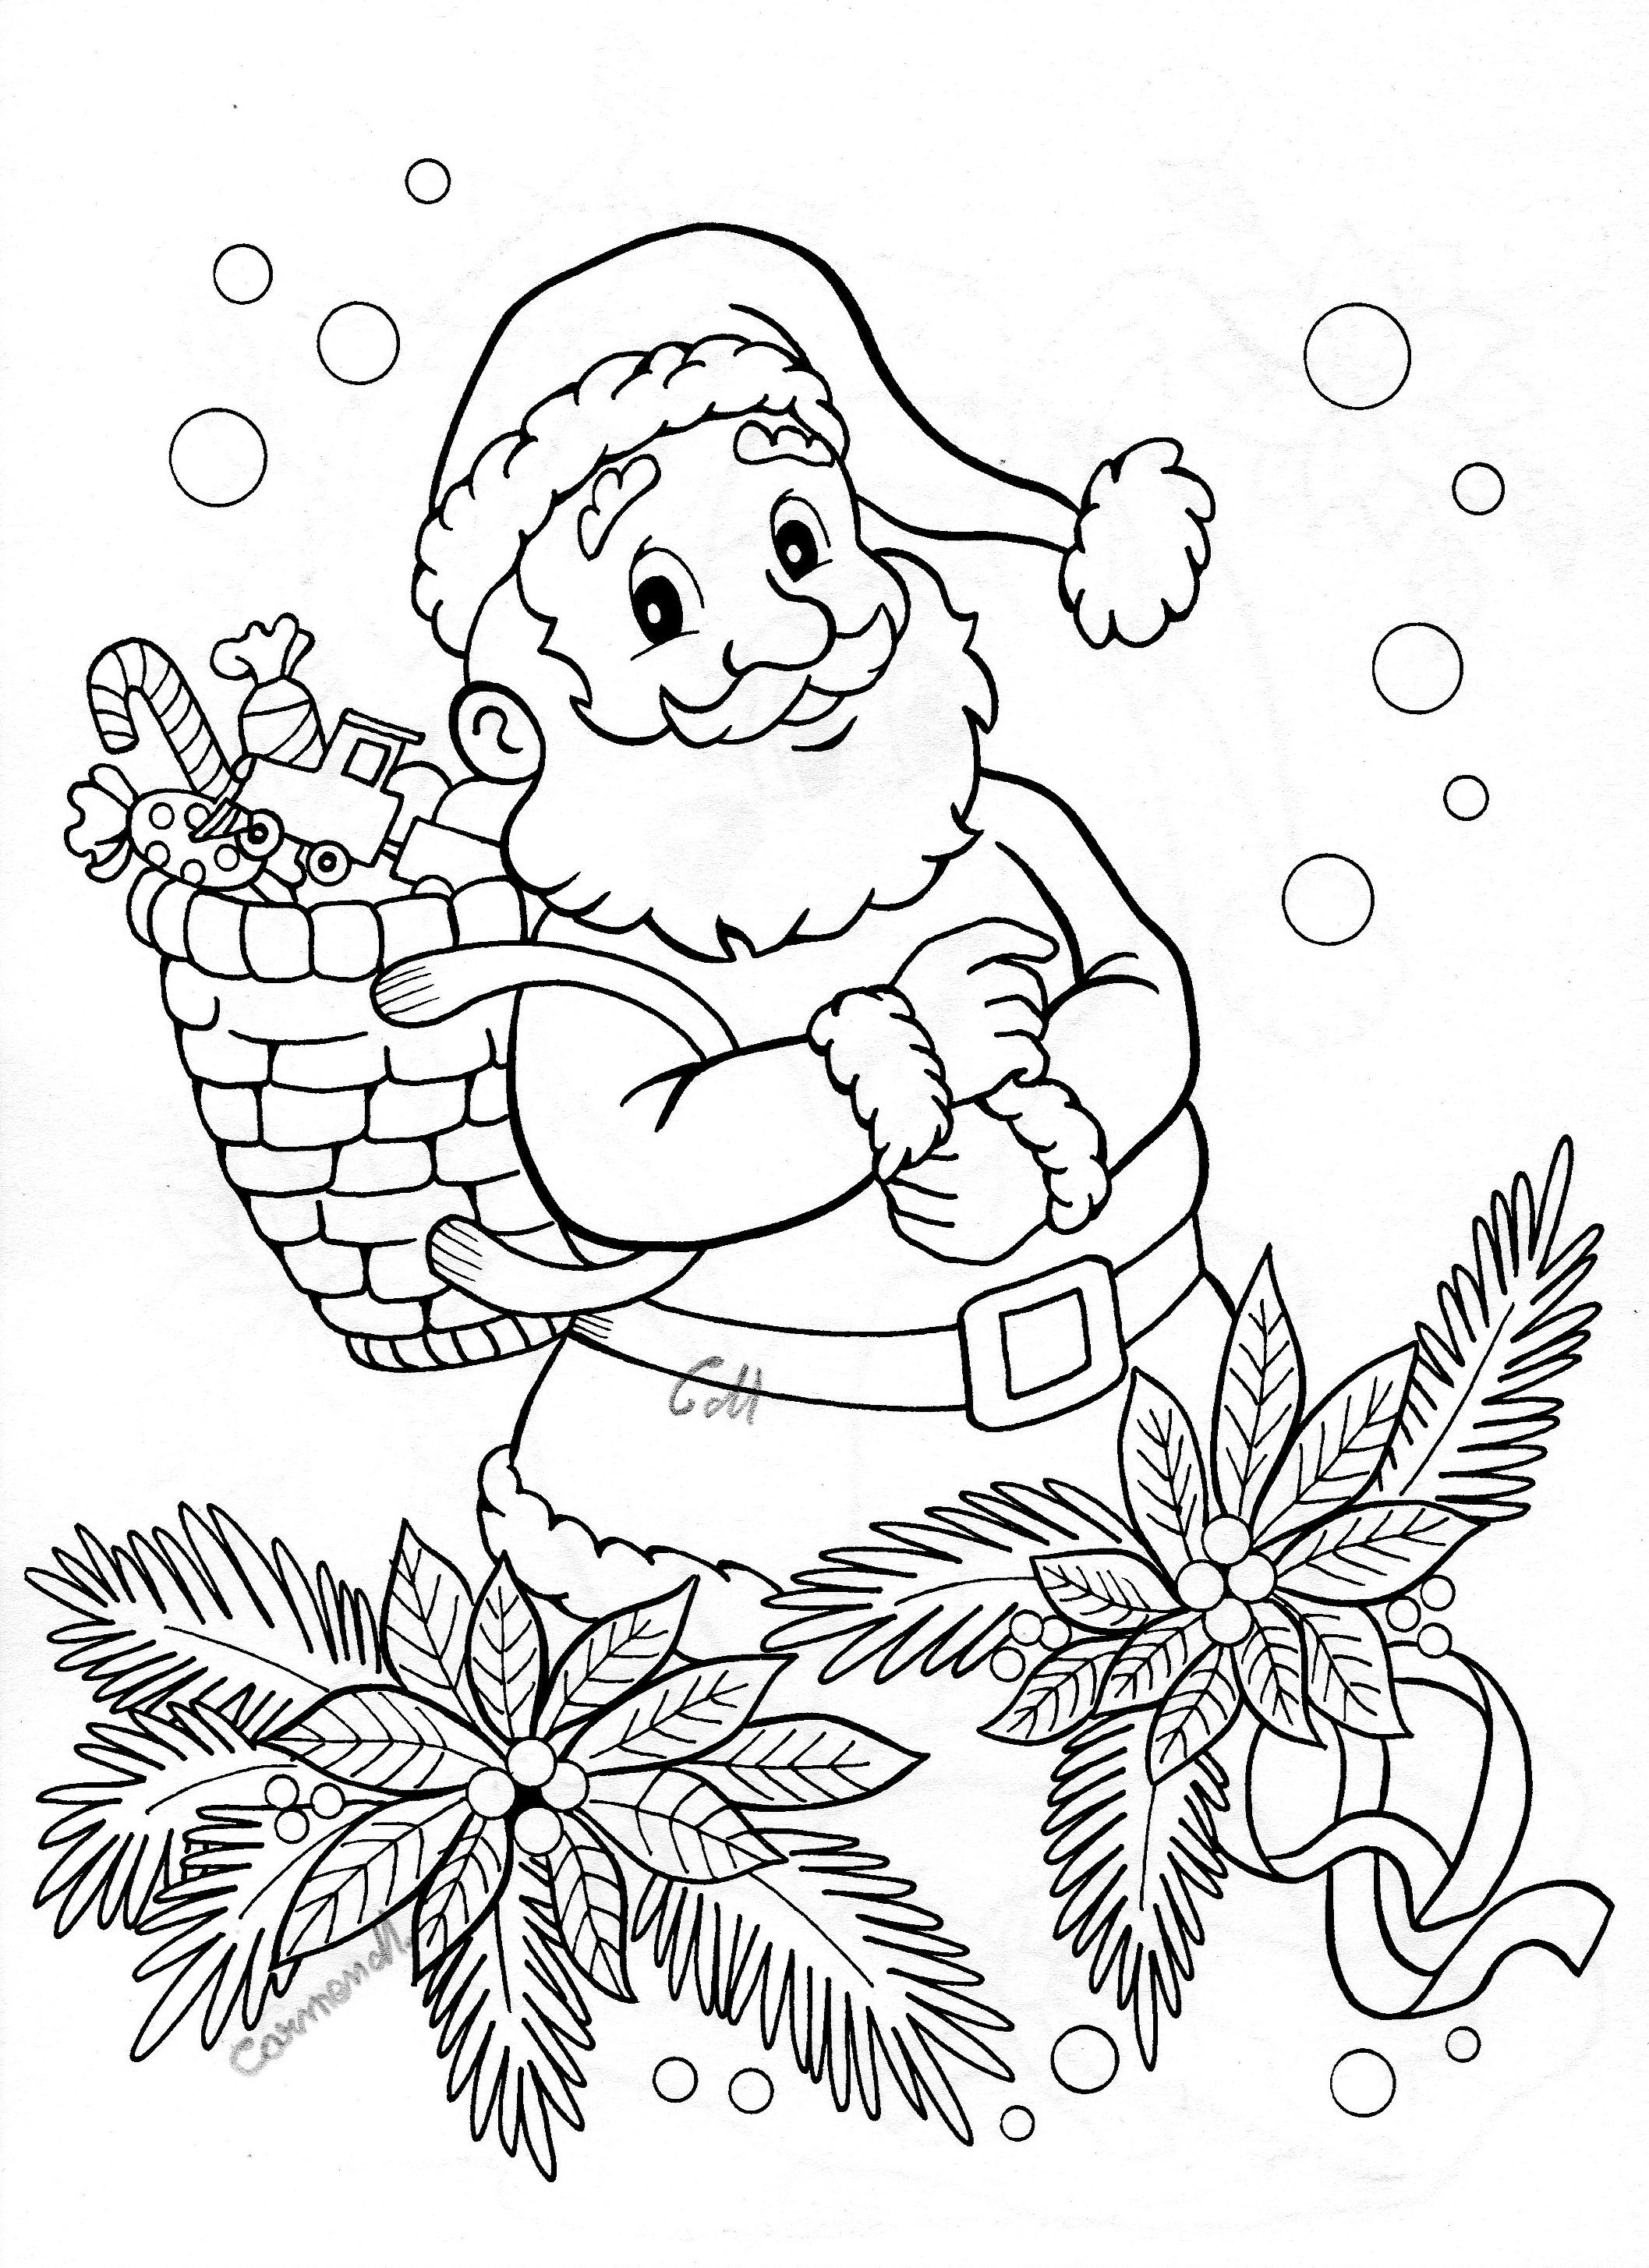 Pin by Diana Presley on Snowman Stitching Patterns ...